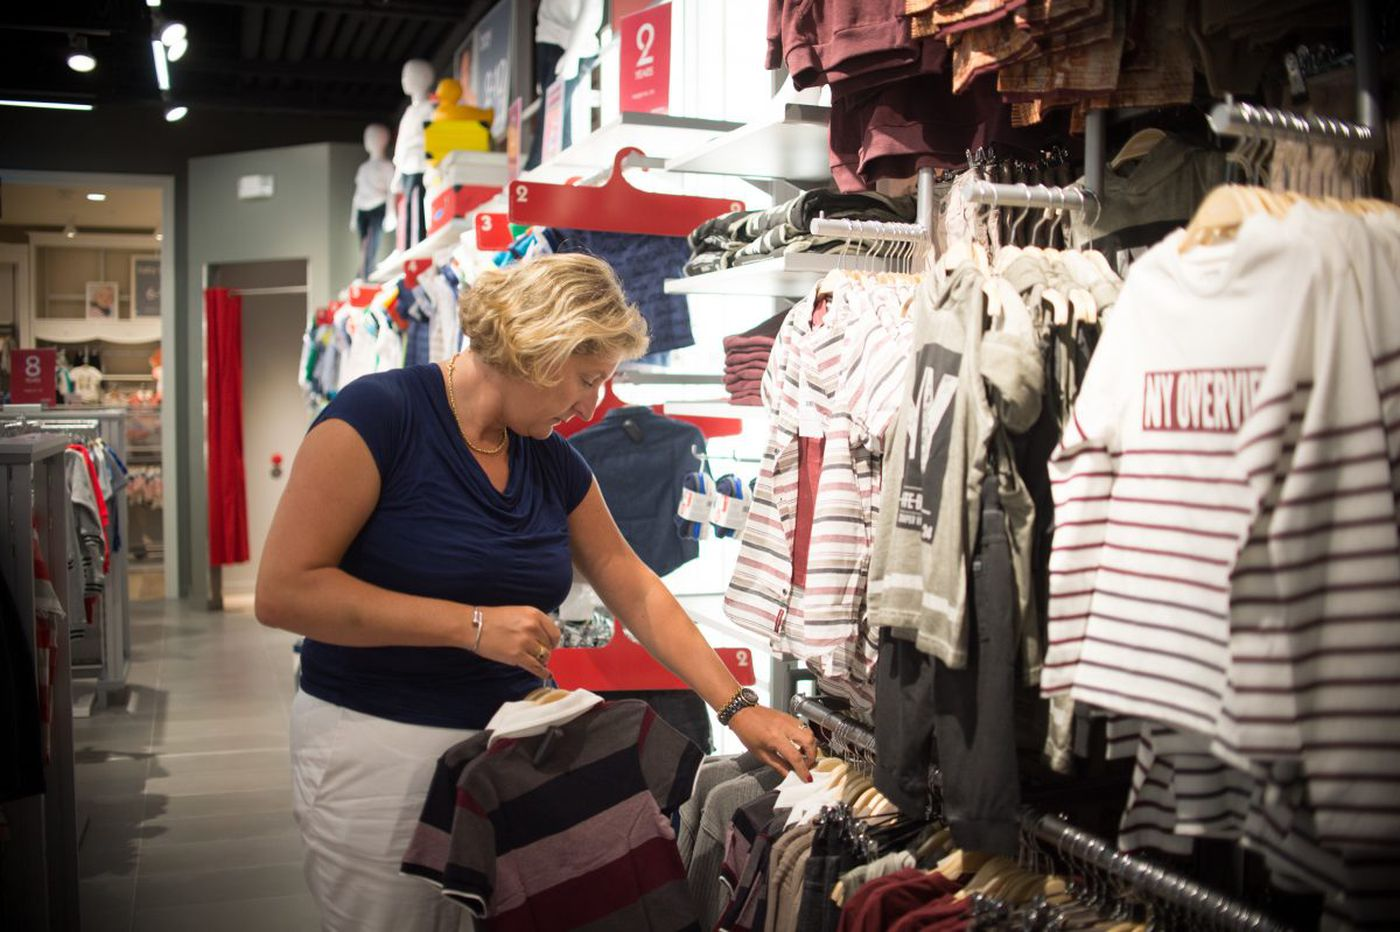 So many clothing stores: What makes this French retailer different?